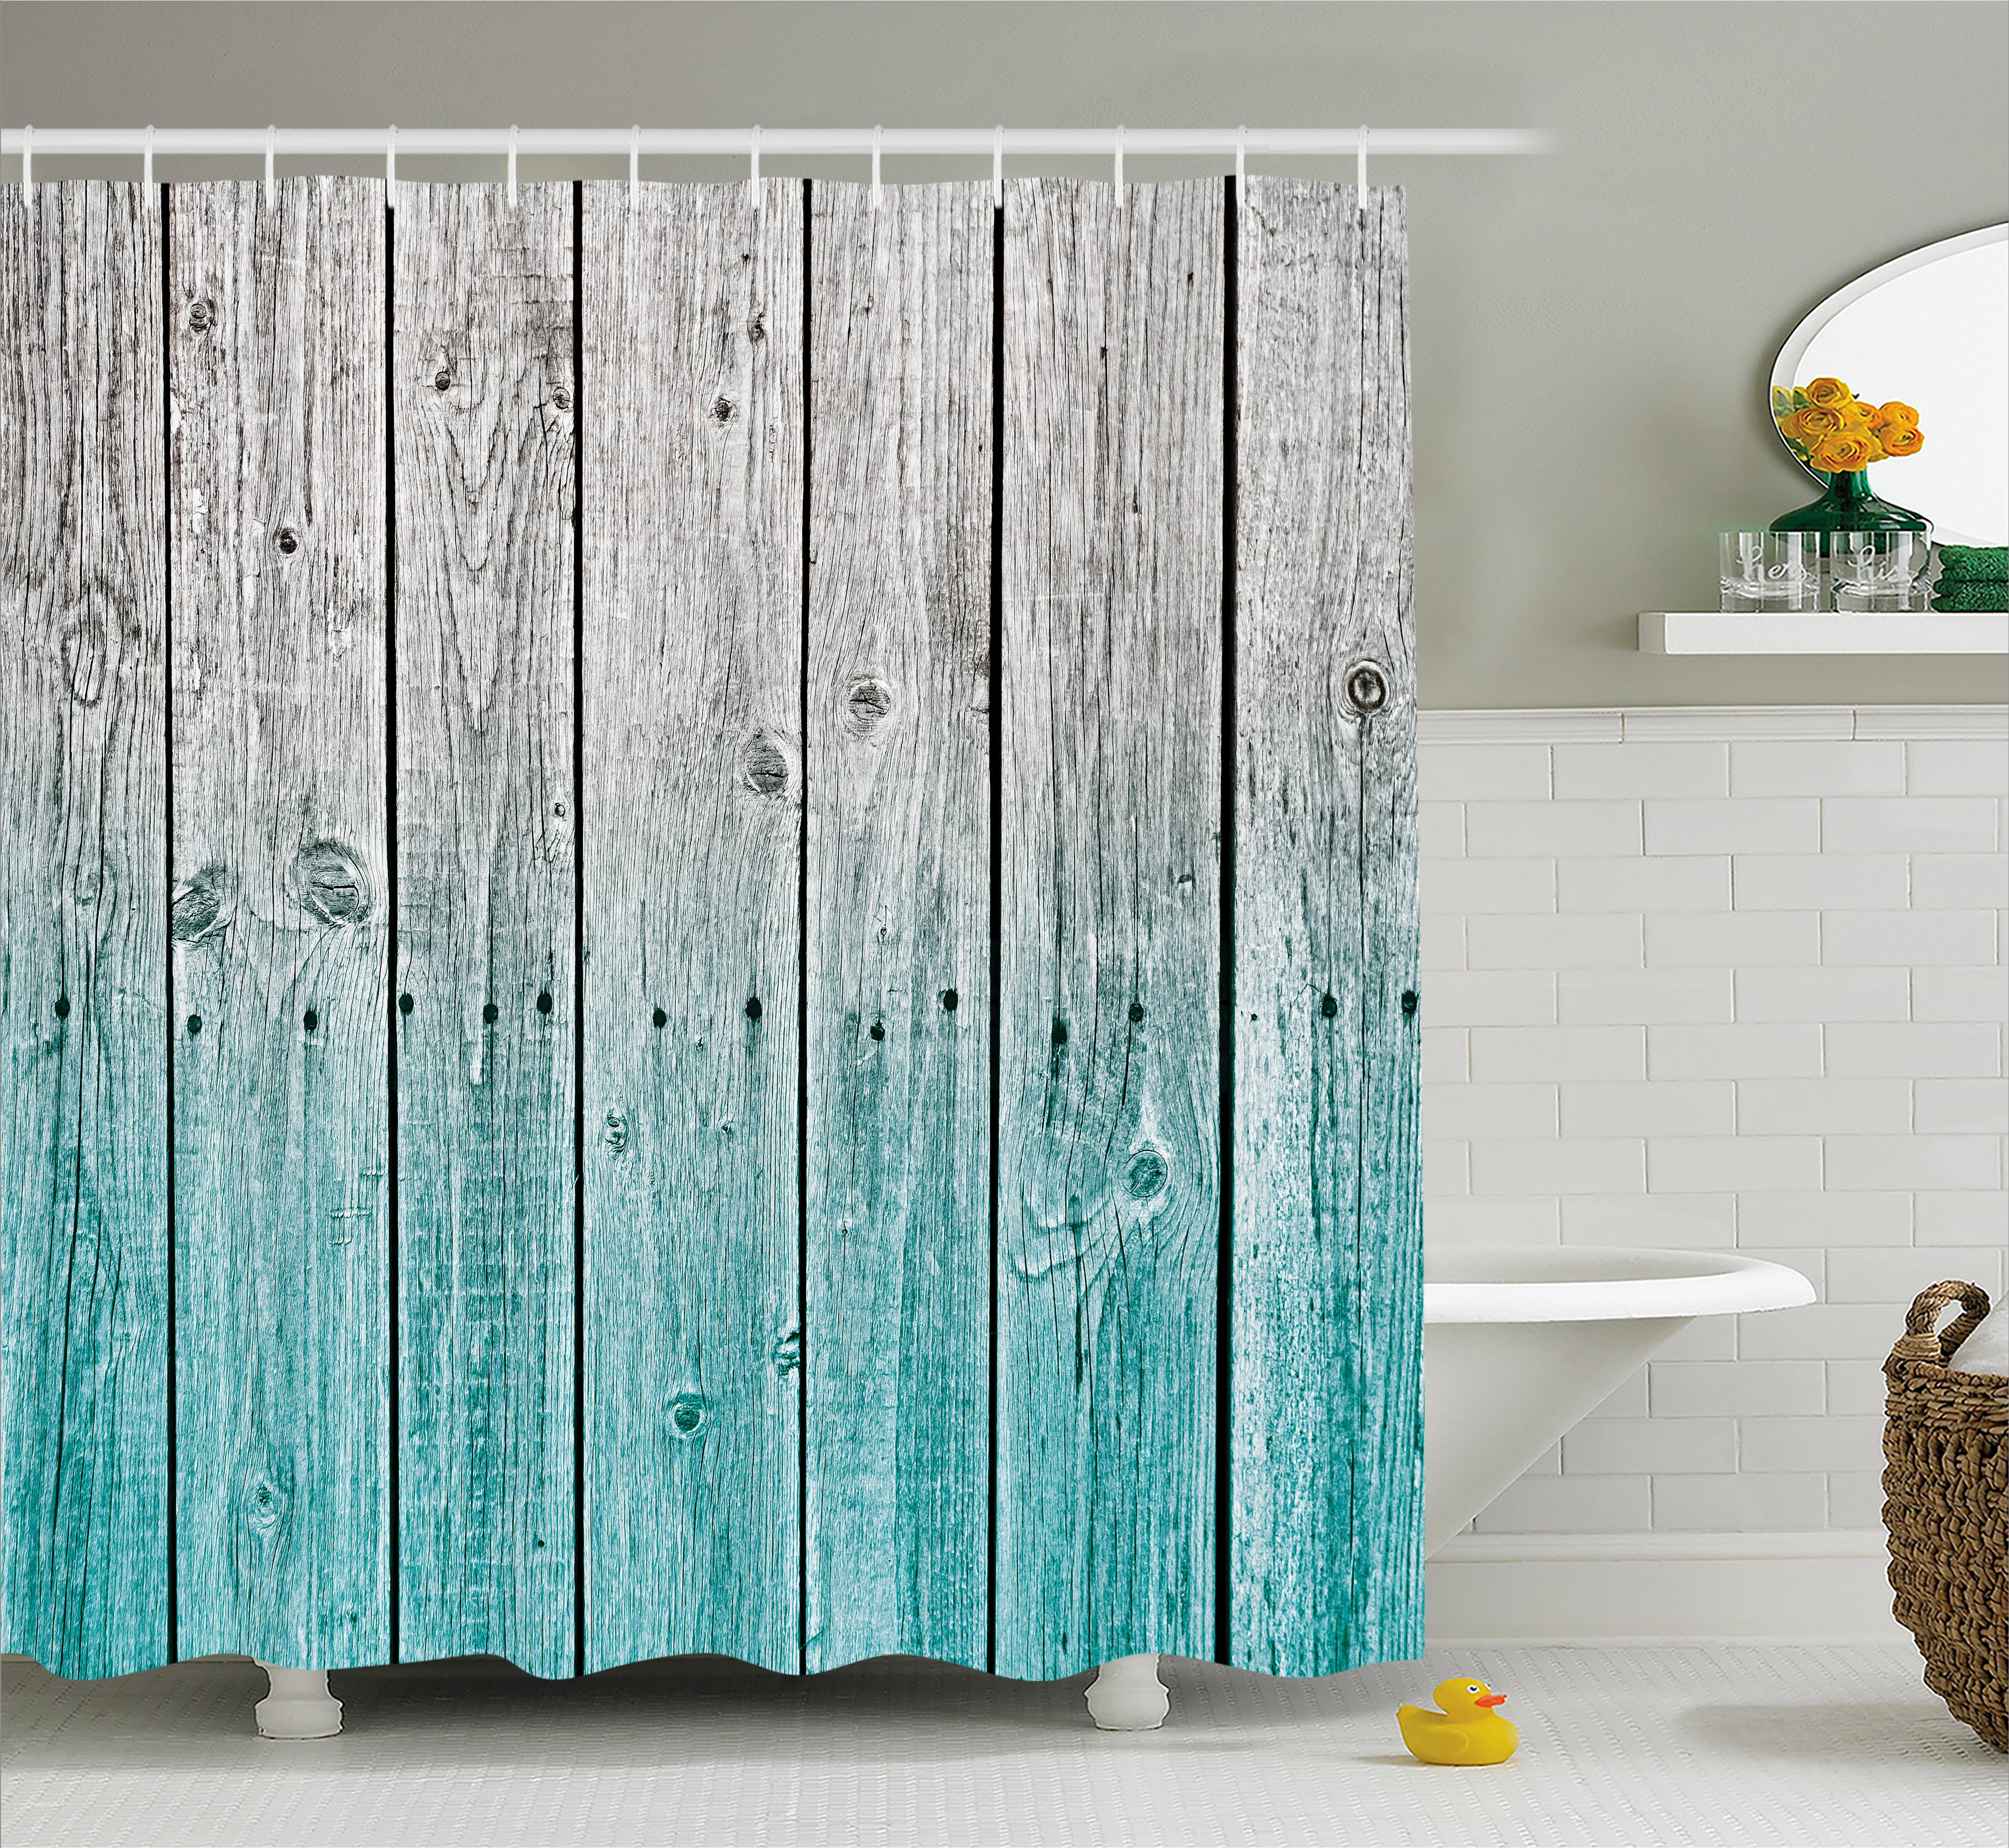 Rustic Shower Curtain, Wood Panels Background With Digital Tones Effect  Country House Image, Fabric